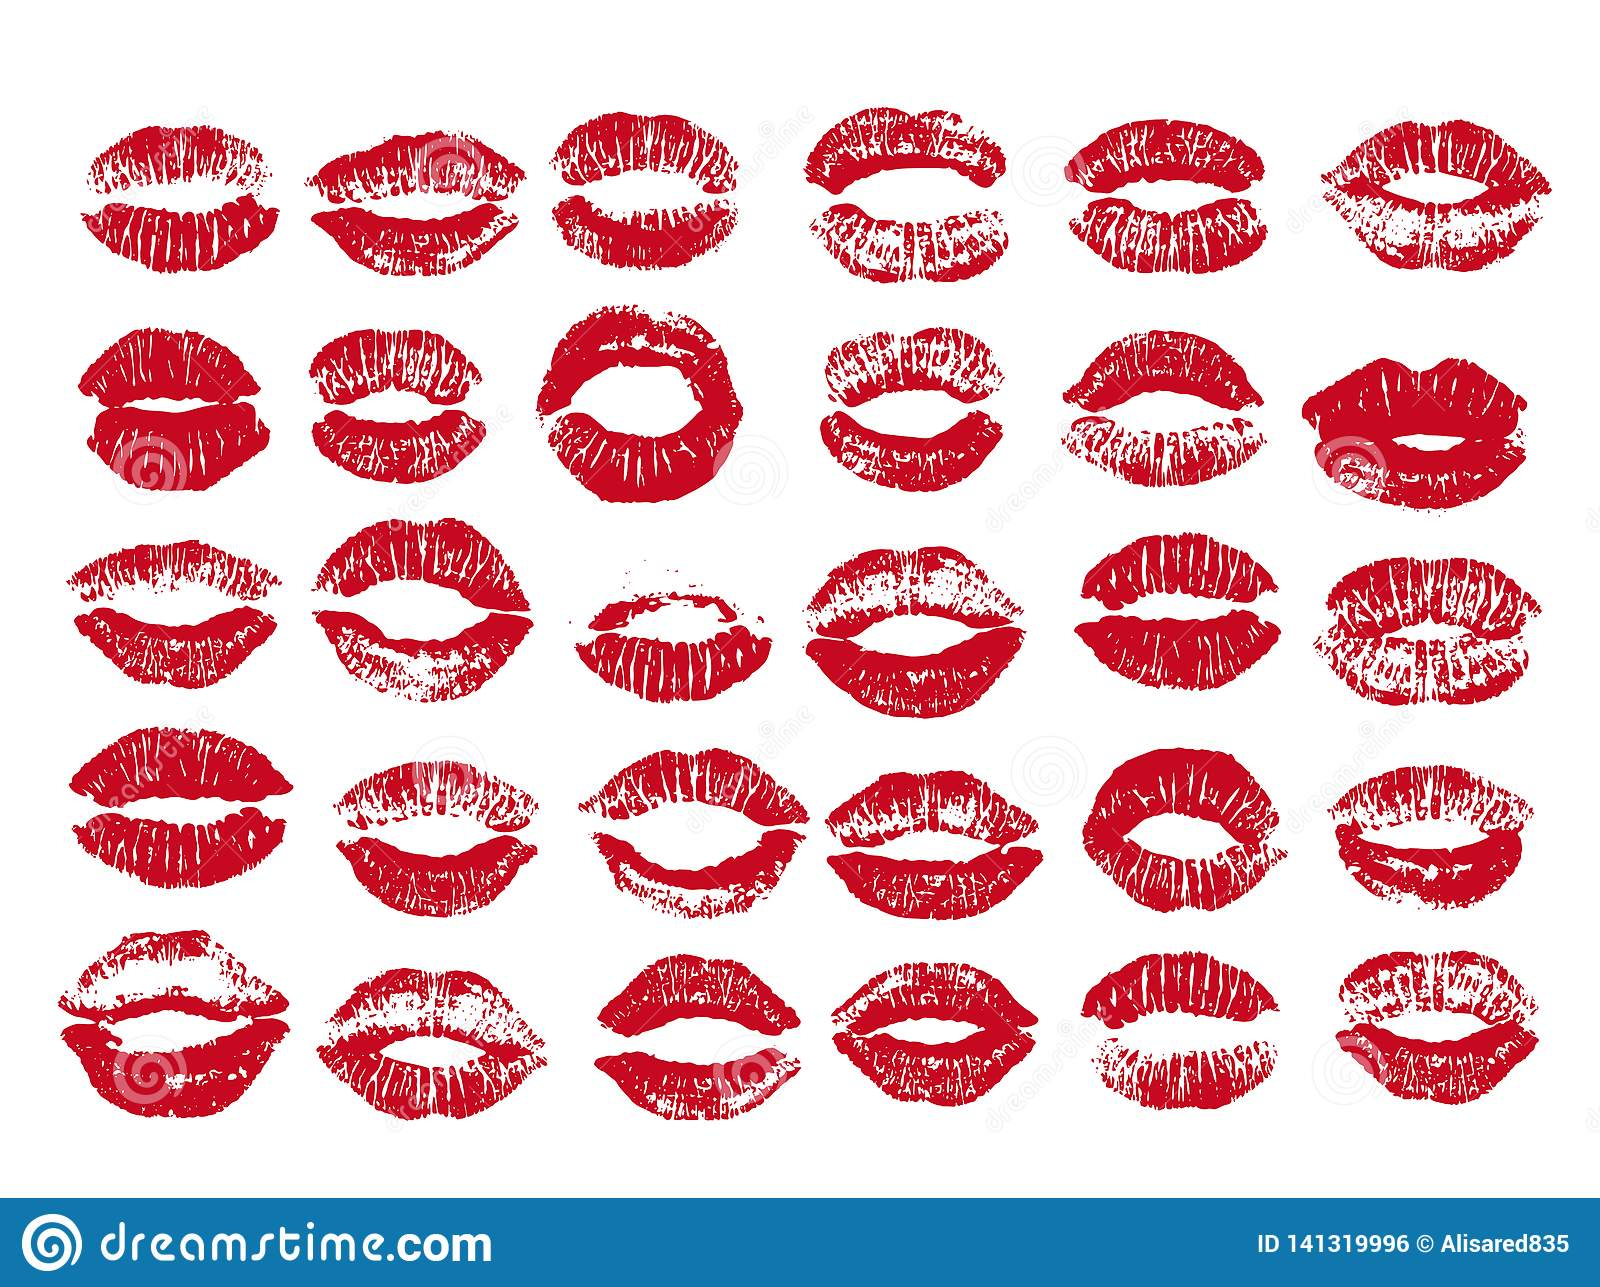 cbb08d7b79a Women lips set. Hand drawn watercolor lips isolated on white background.  Fashion and beauty illustration.